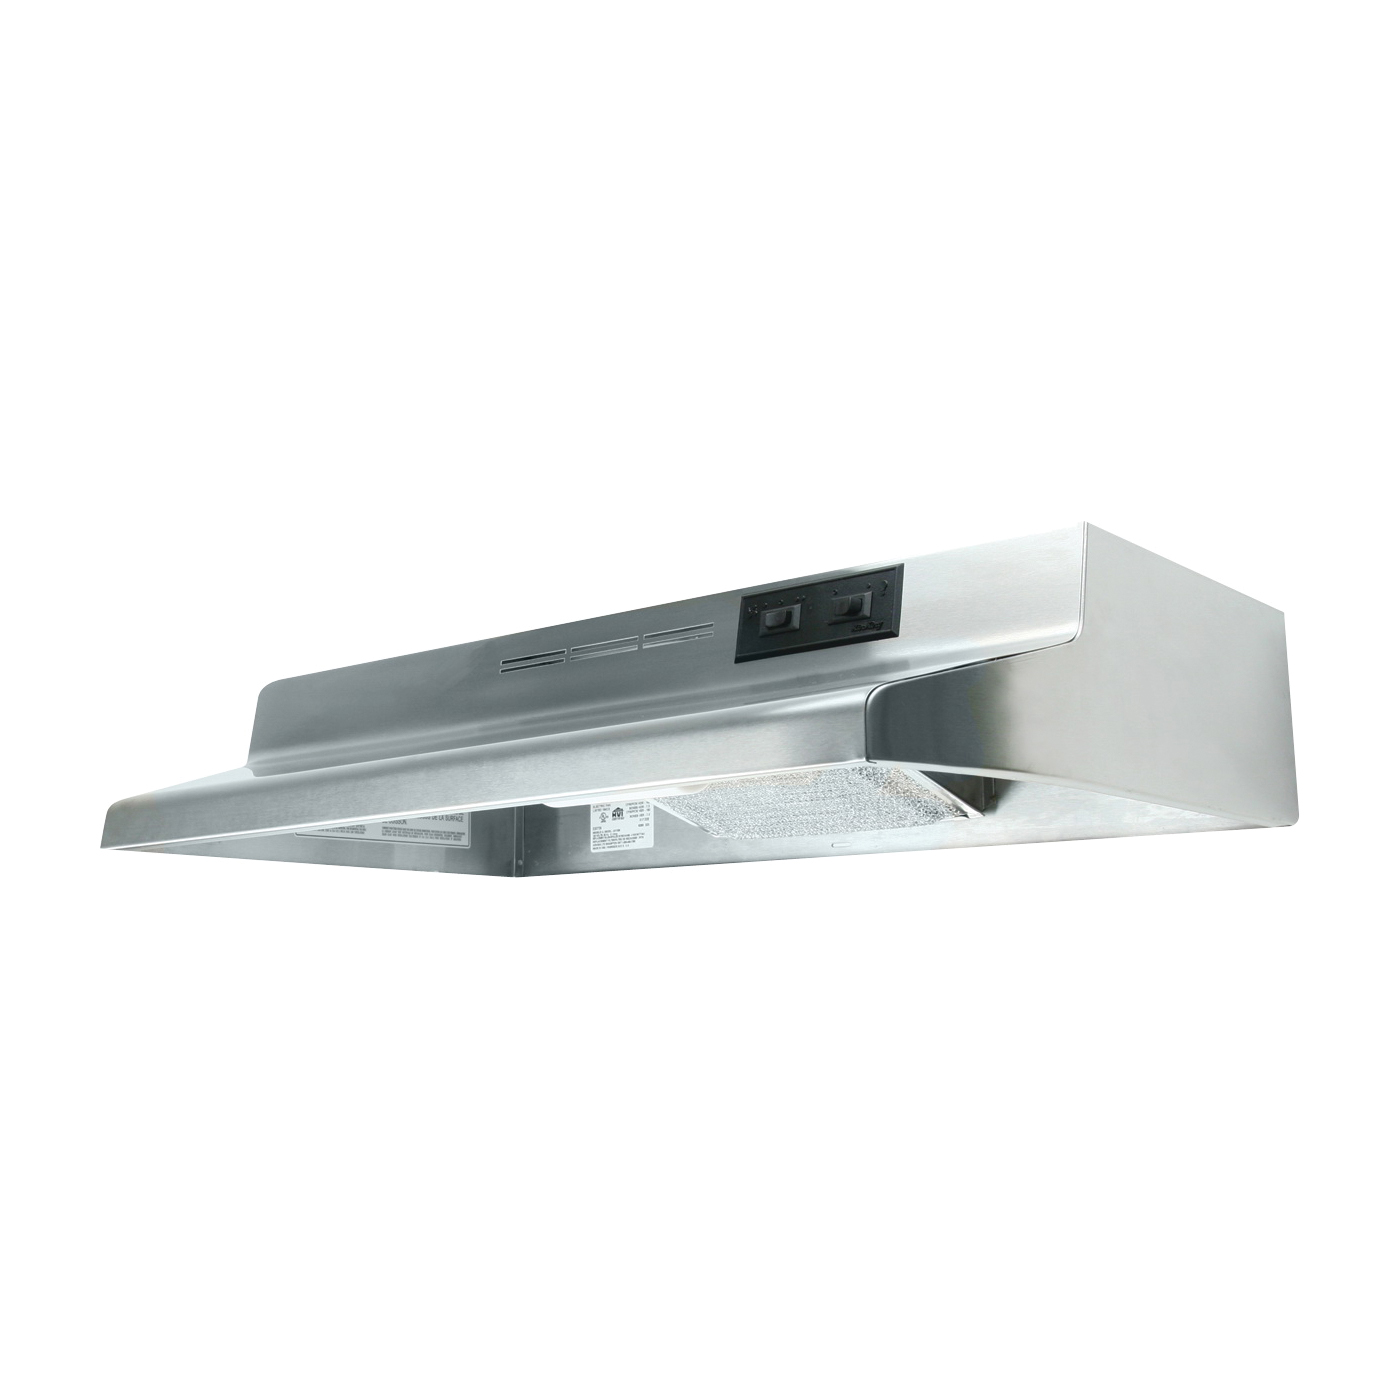 Picture of Air King Advantage AD AD1308 Range Hood, 180 cfm, 2 Fan, 30 in W, 12 in D, 6 in H, Cold Rolled Steel